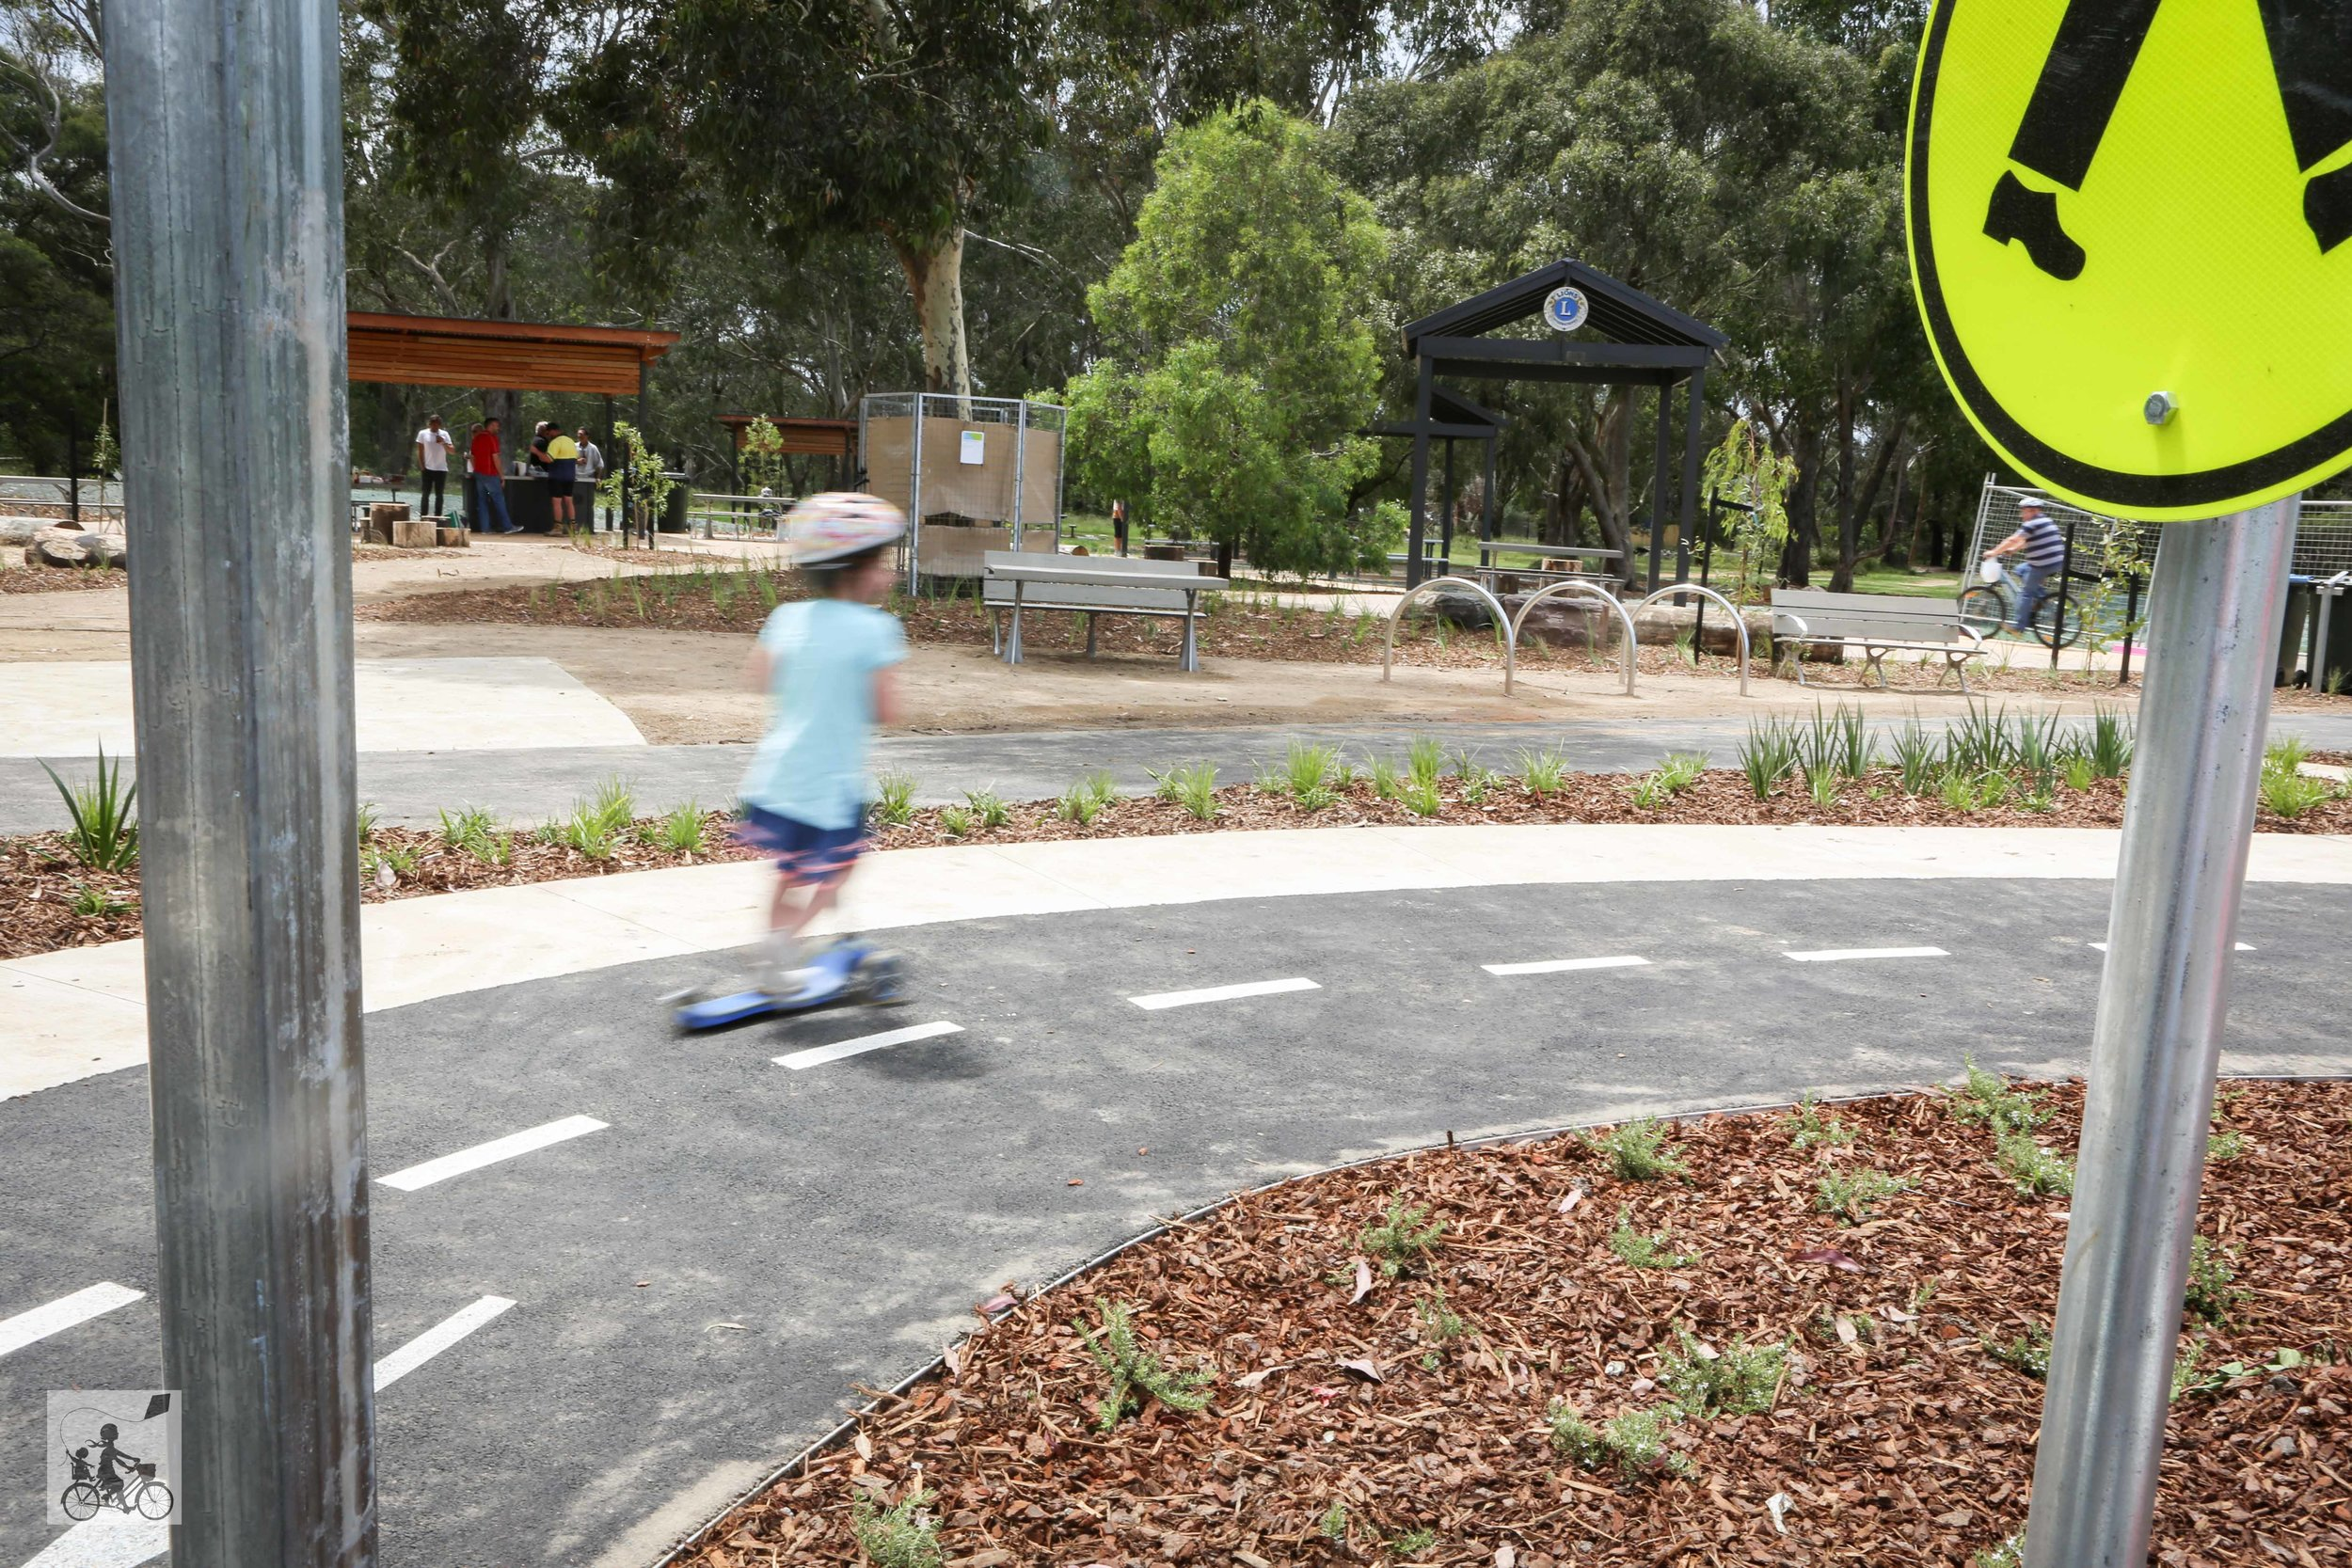 Marie Wallace Bayswater Park 2018 Traffic Park - Mamma Knows East (20 of 21).jpg